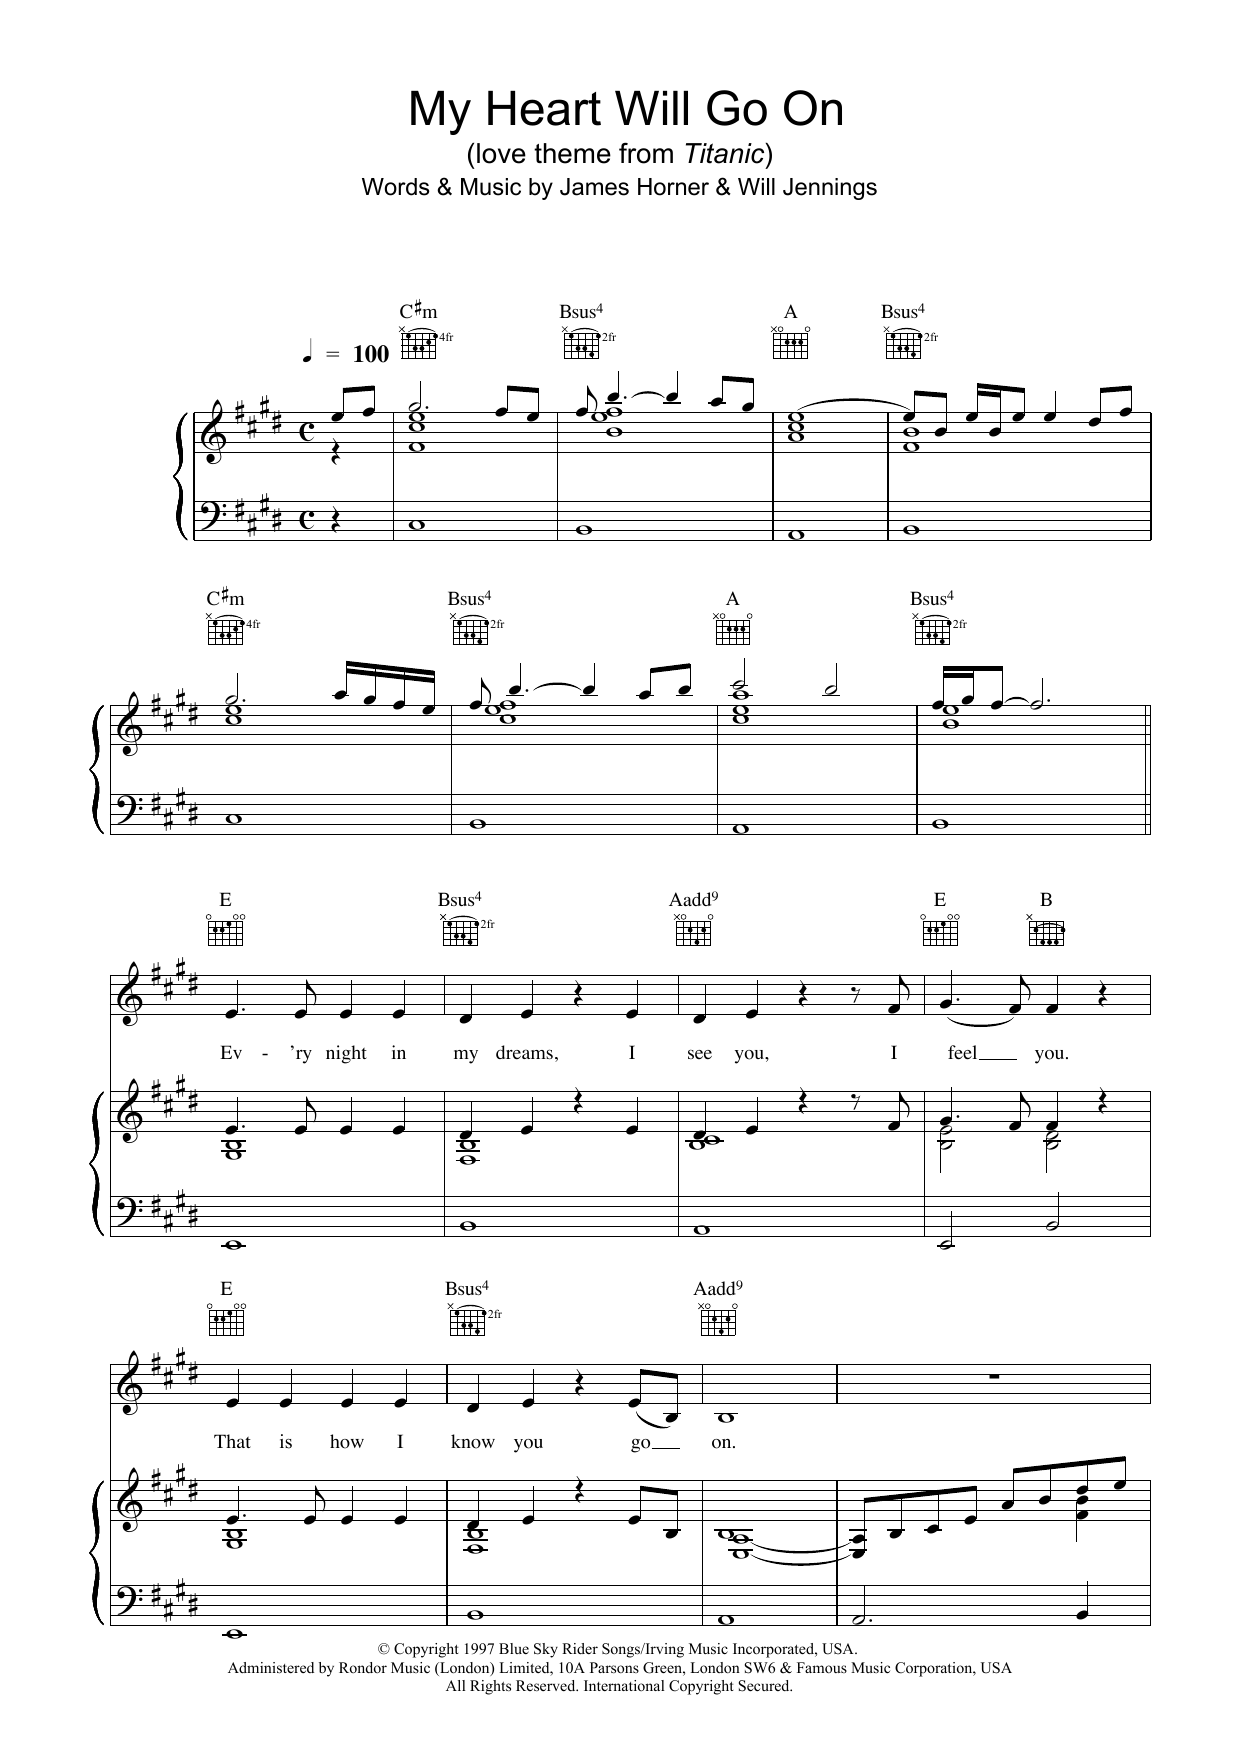 My Heart Will Go On (Love Theme from Titanic) | Sheet Music Direct